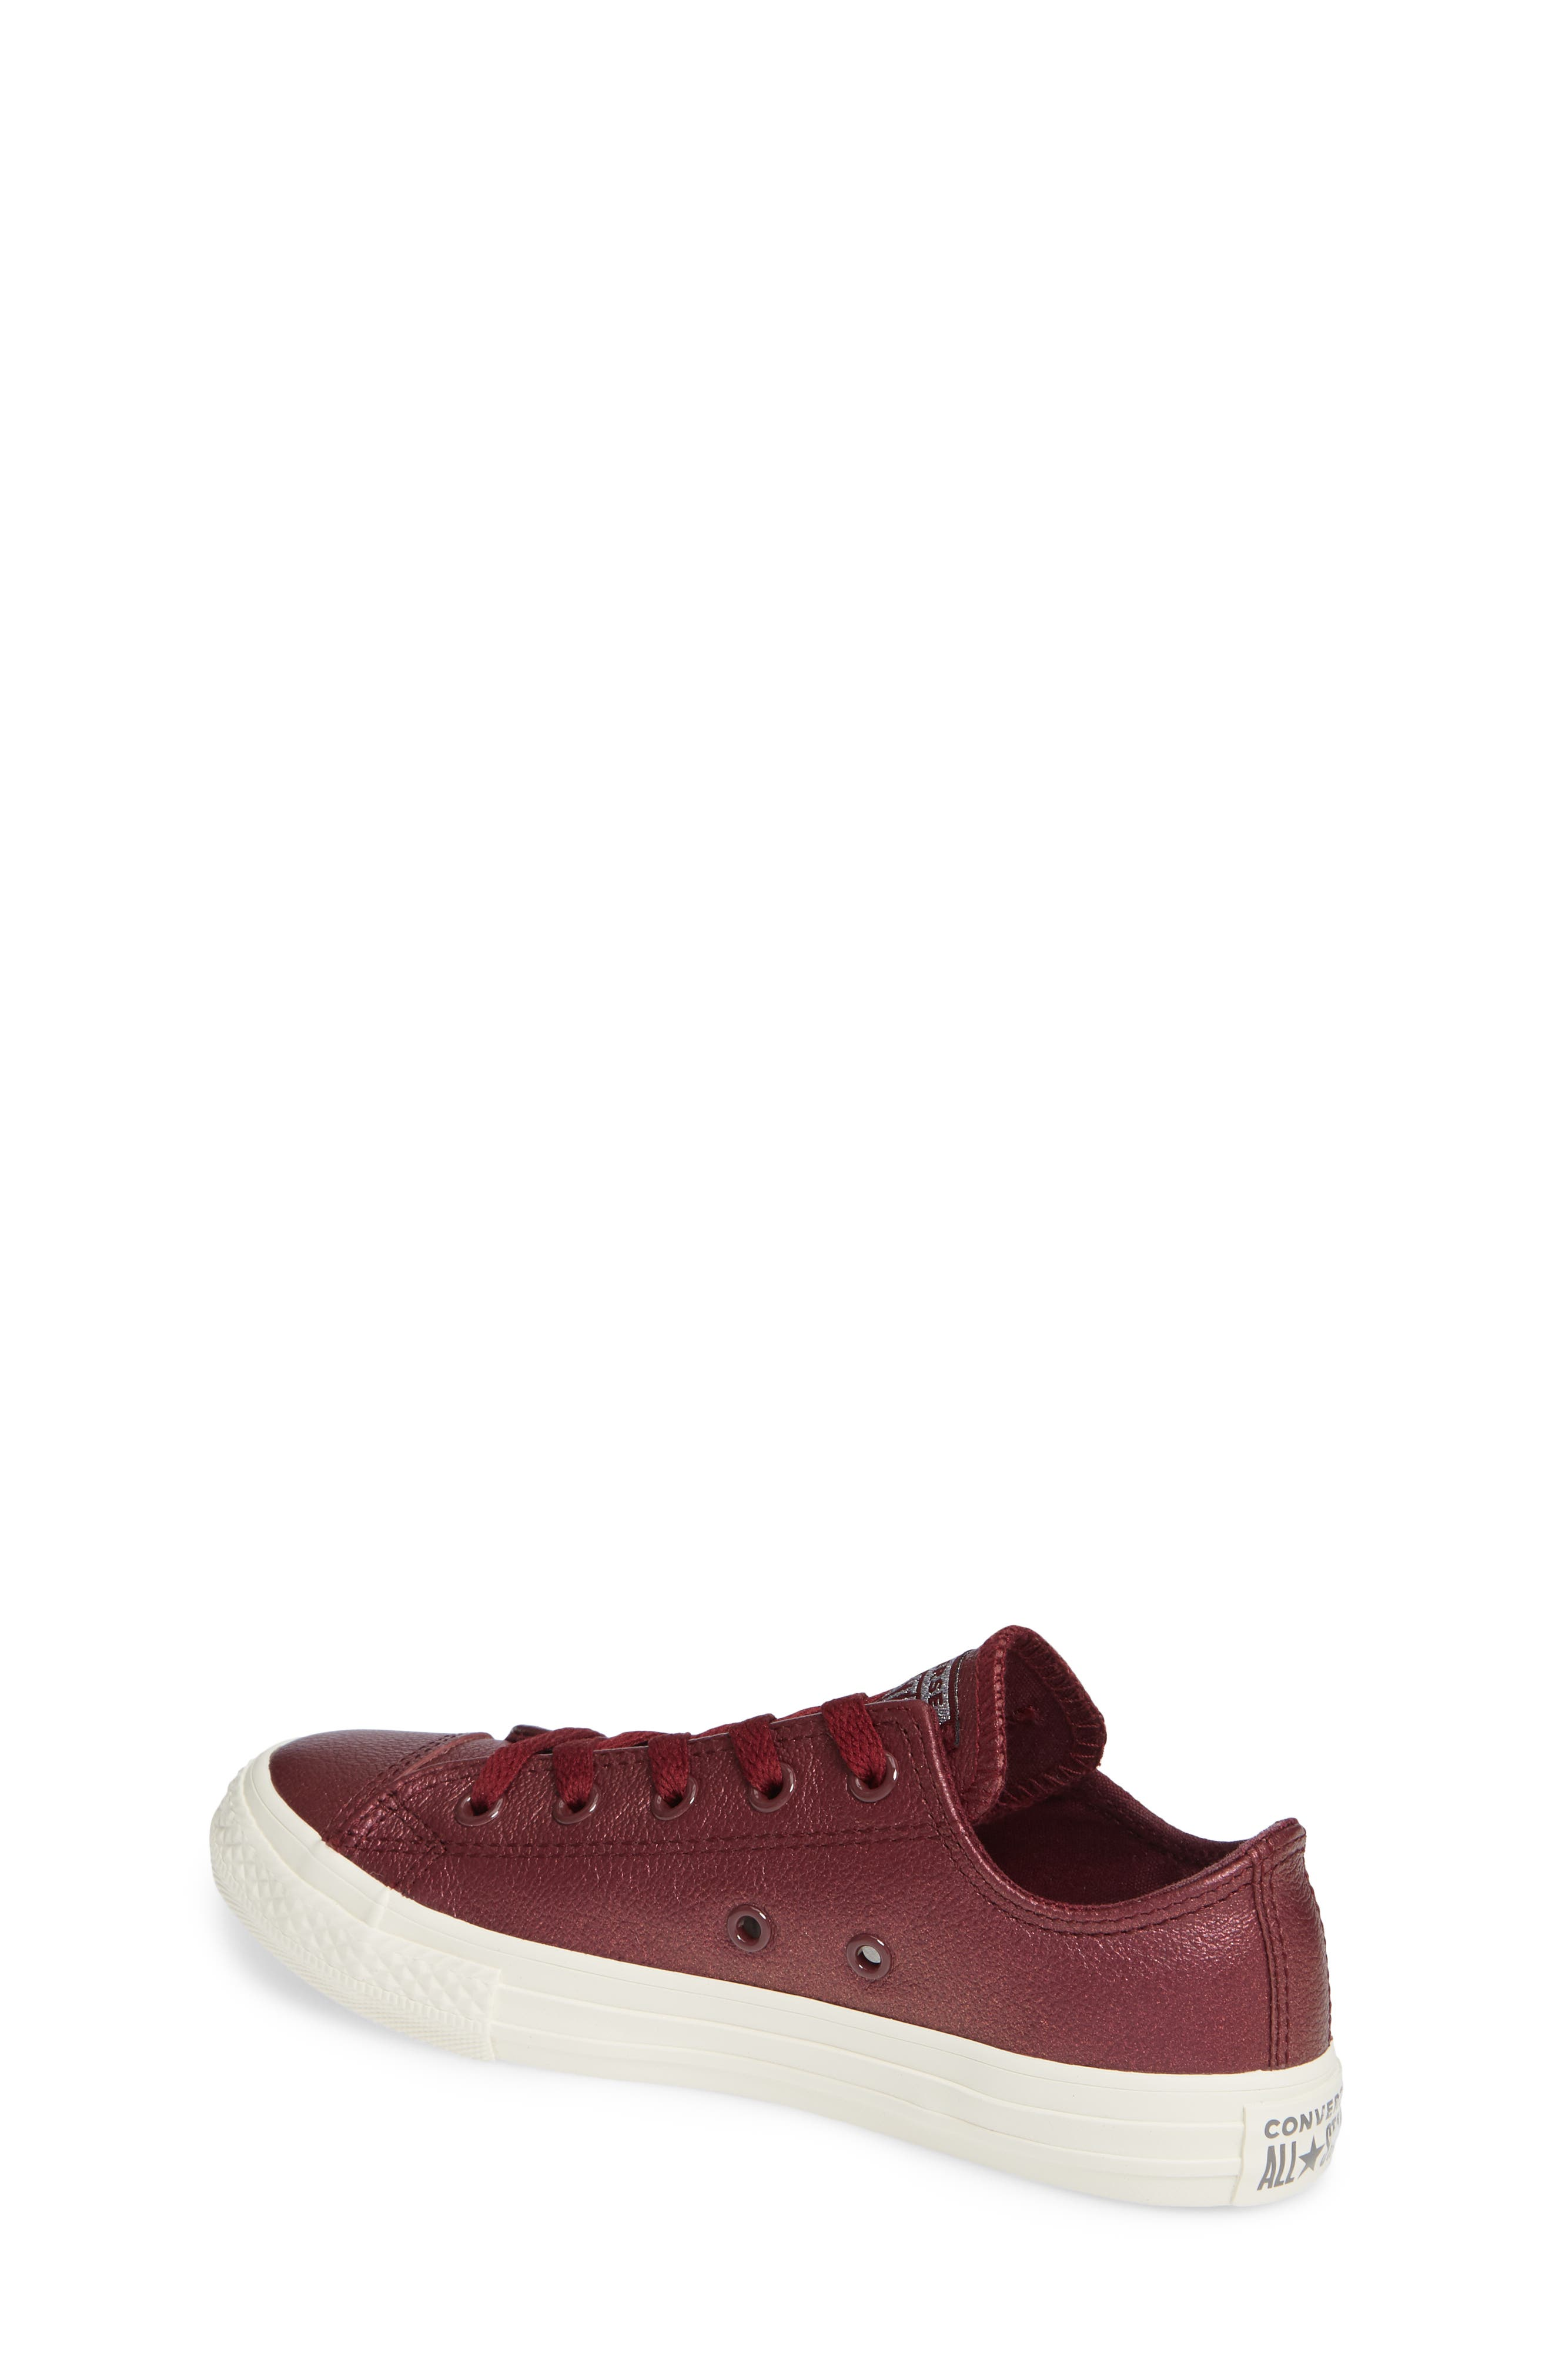 Chuck Taylor<sup>®</sup> All Star<sup>®</sup> Metallic Faux Leather Ox Sneaker,                             Alternate thumbnail 2, color,                             DARK BURGUNDY